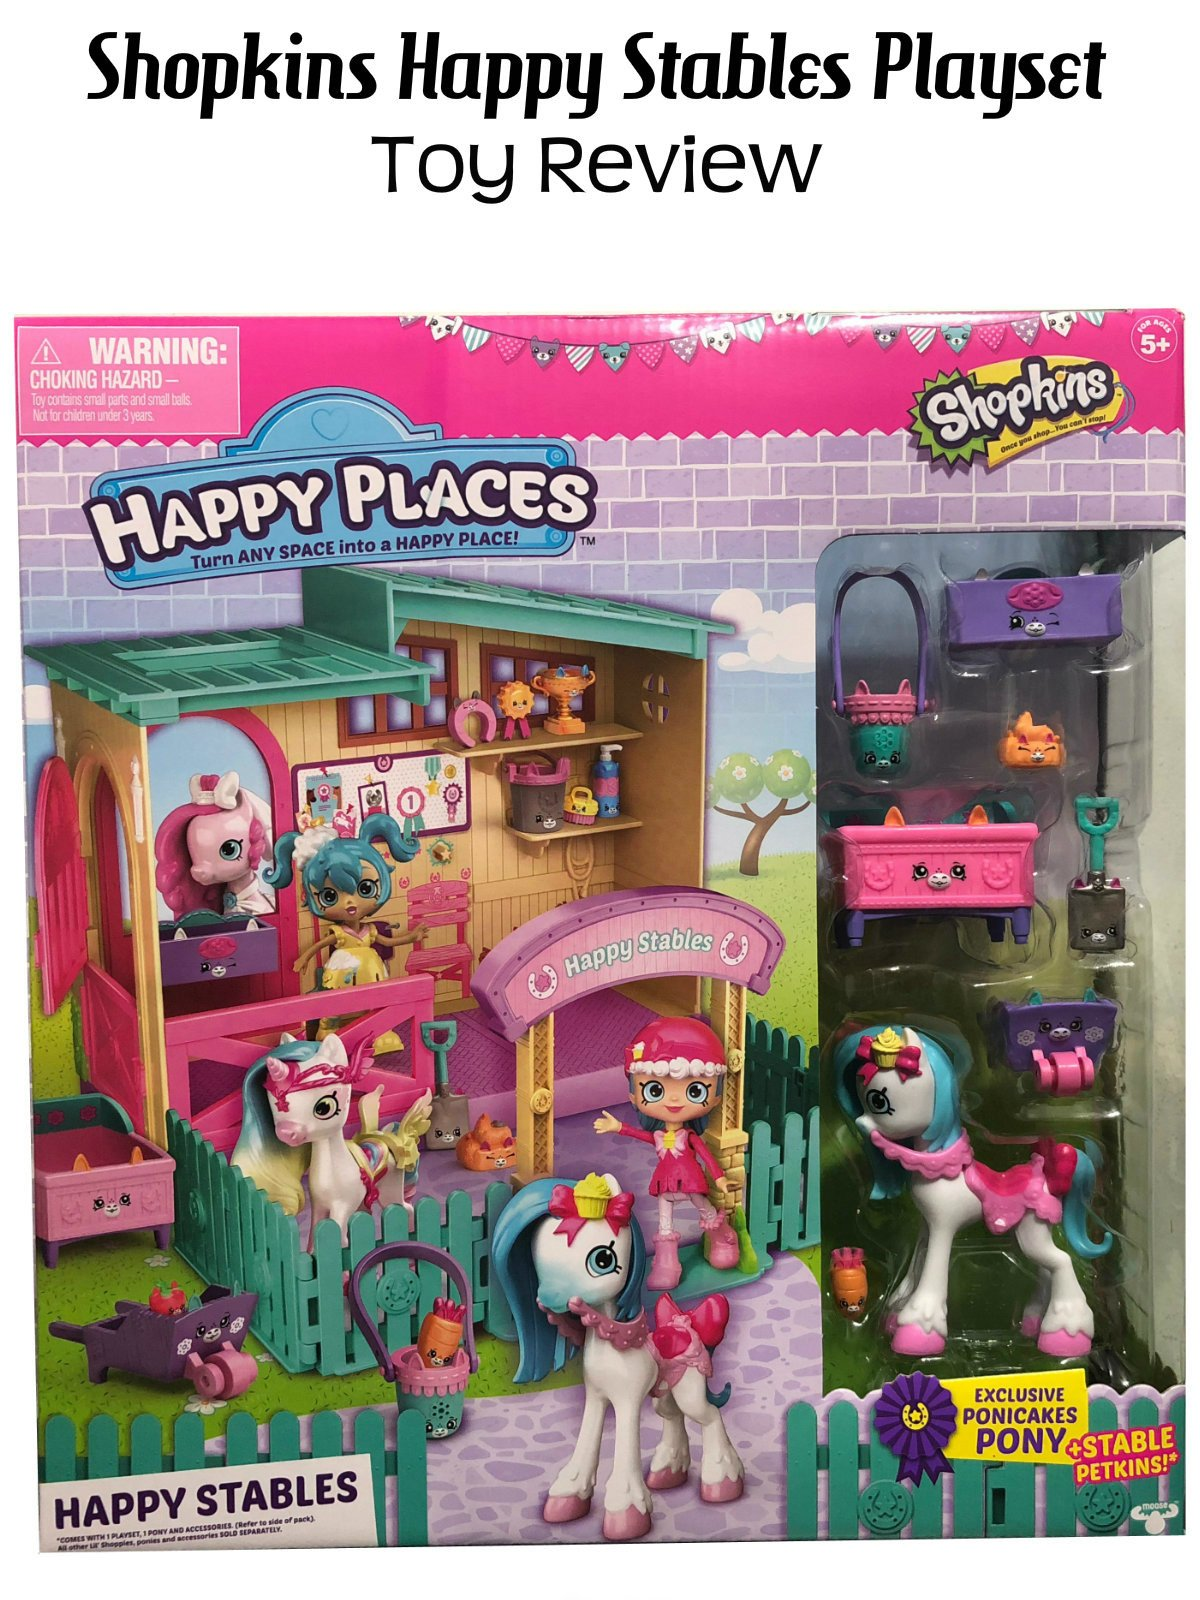 Review: Shopkins Happy Stables Playset Toy Review